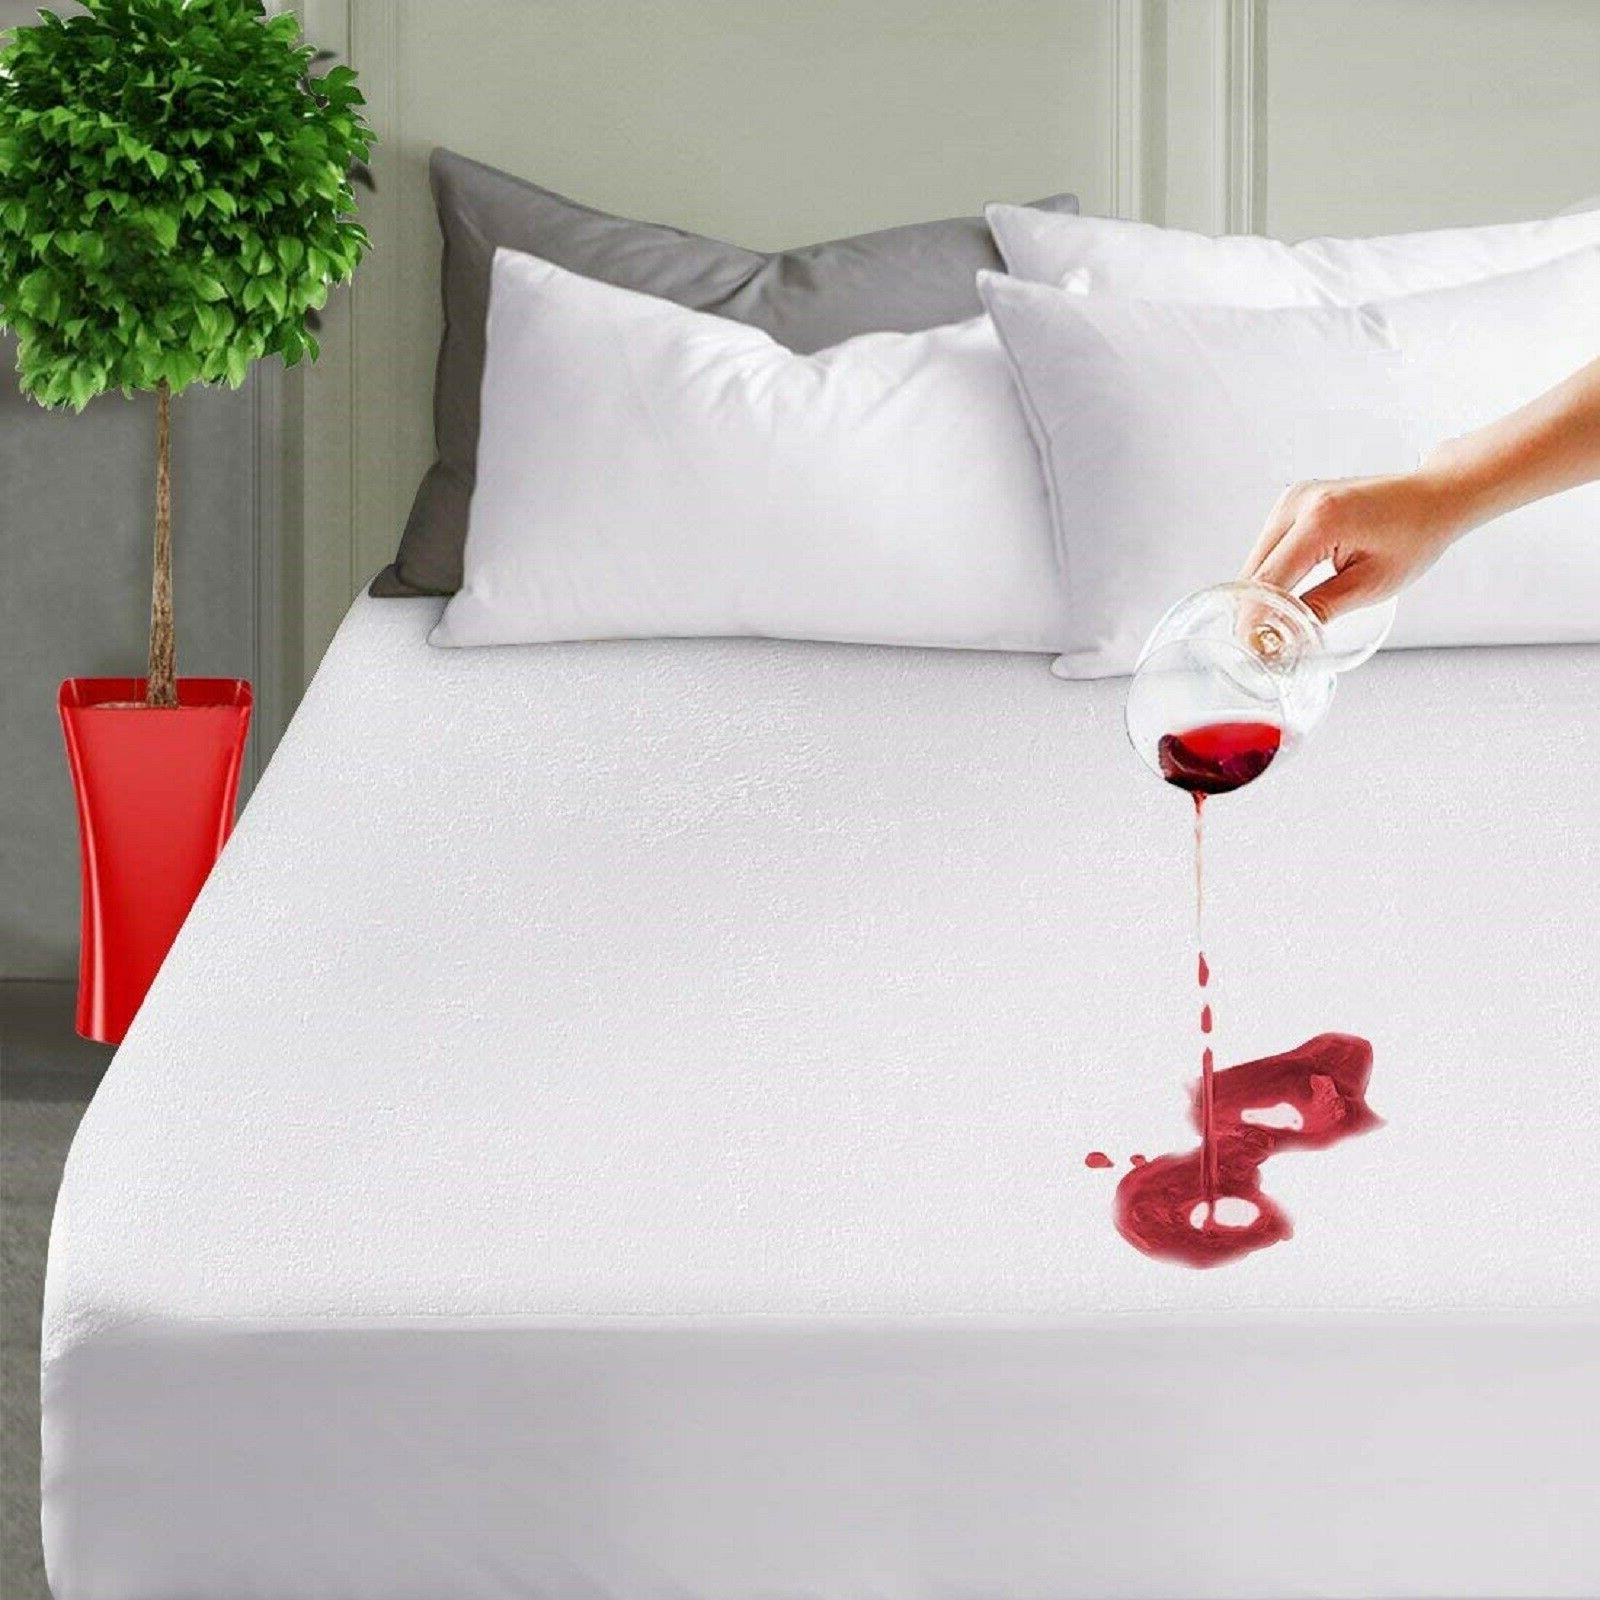 Mattress Cover Protector King Size Waterproof Pad Bed